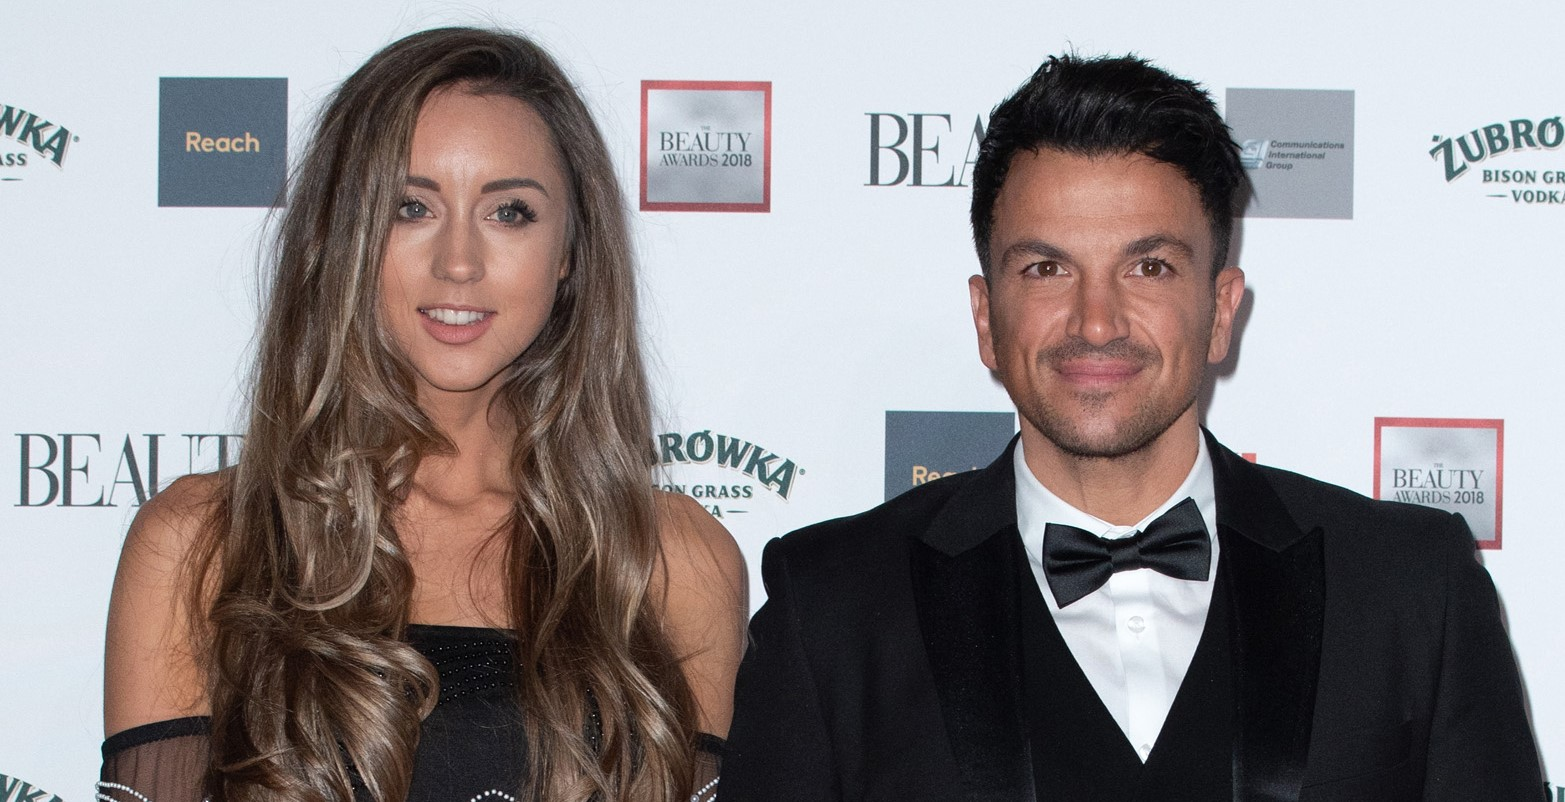 Peter Andre reveals awkward blunder he made to wife on Valentine's Day